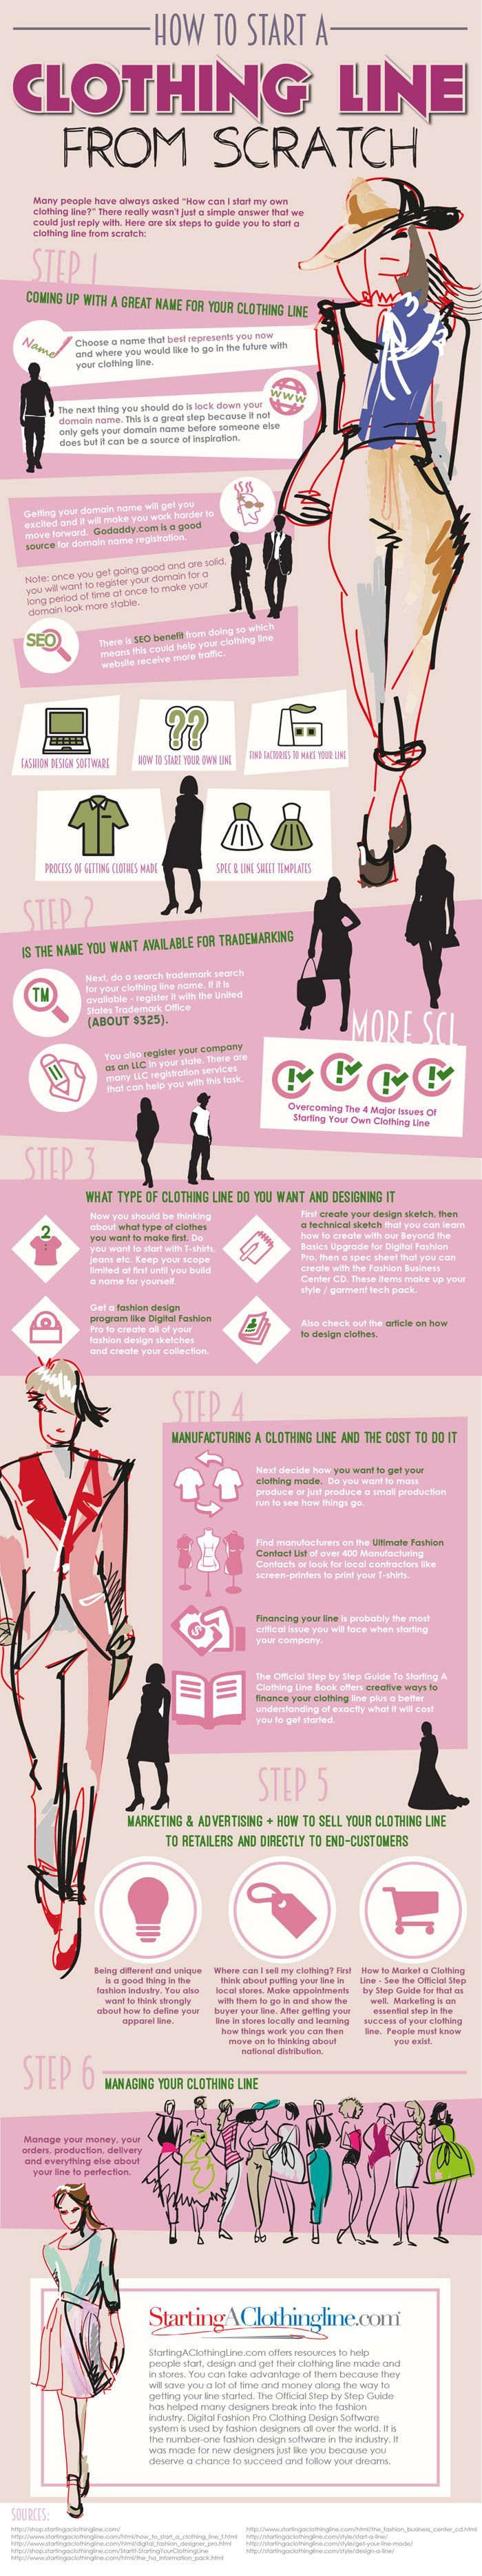 Poster design software for windows 8 1 - Poster Design Software Windows 8 How To Start A Clothing Line From Scratch Infographic Clothingline Download